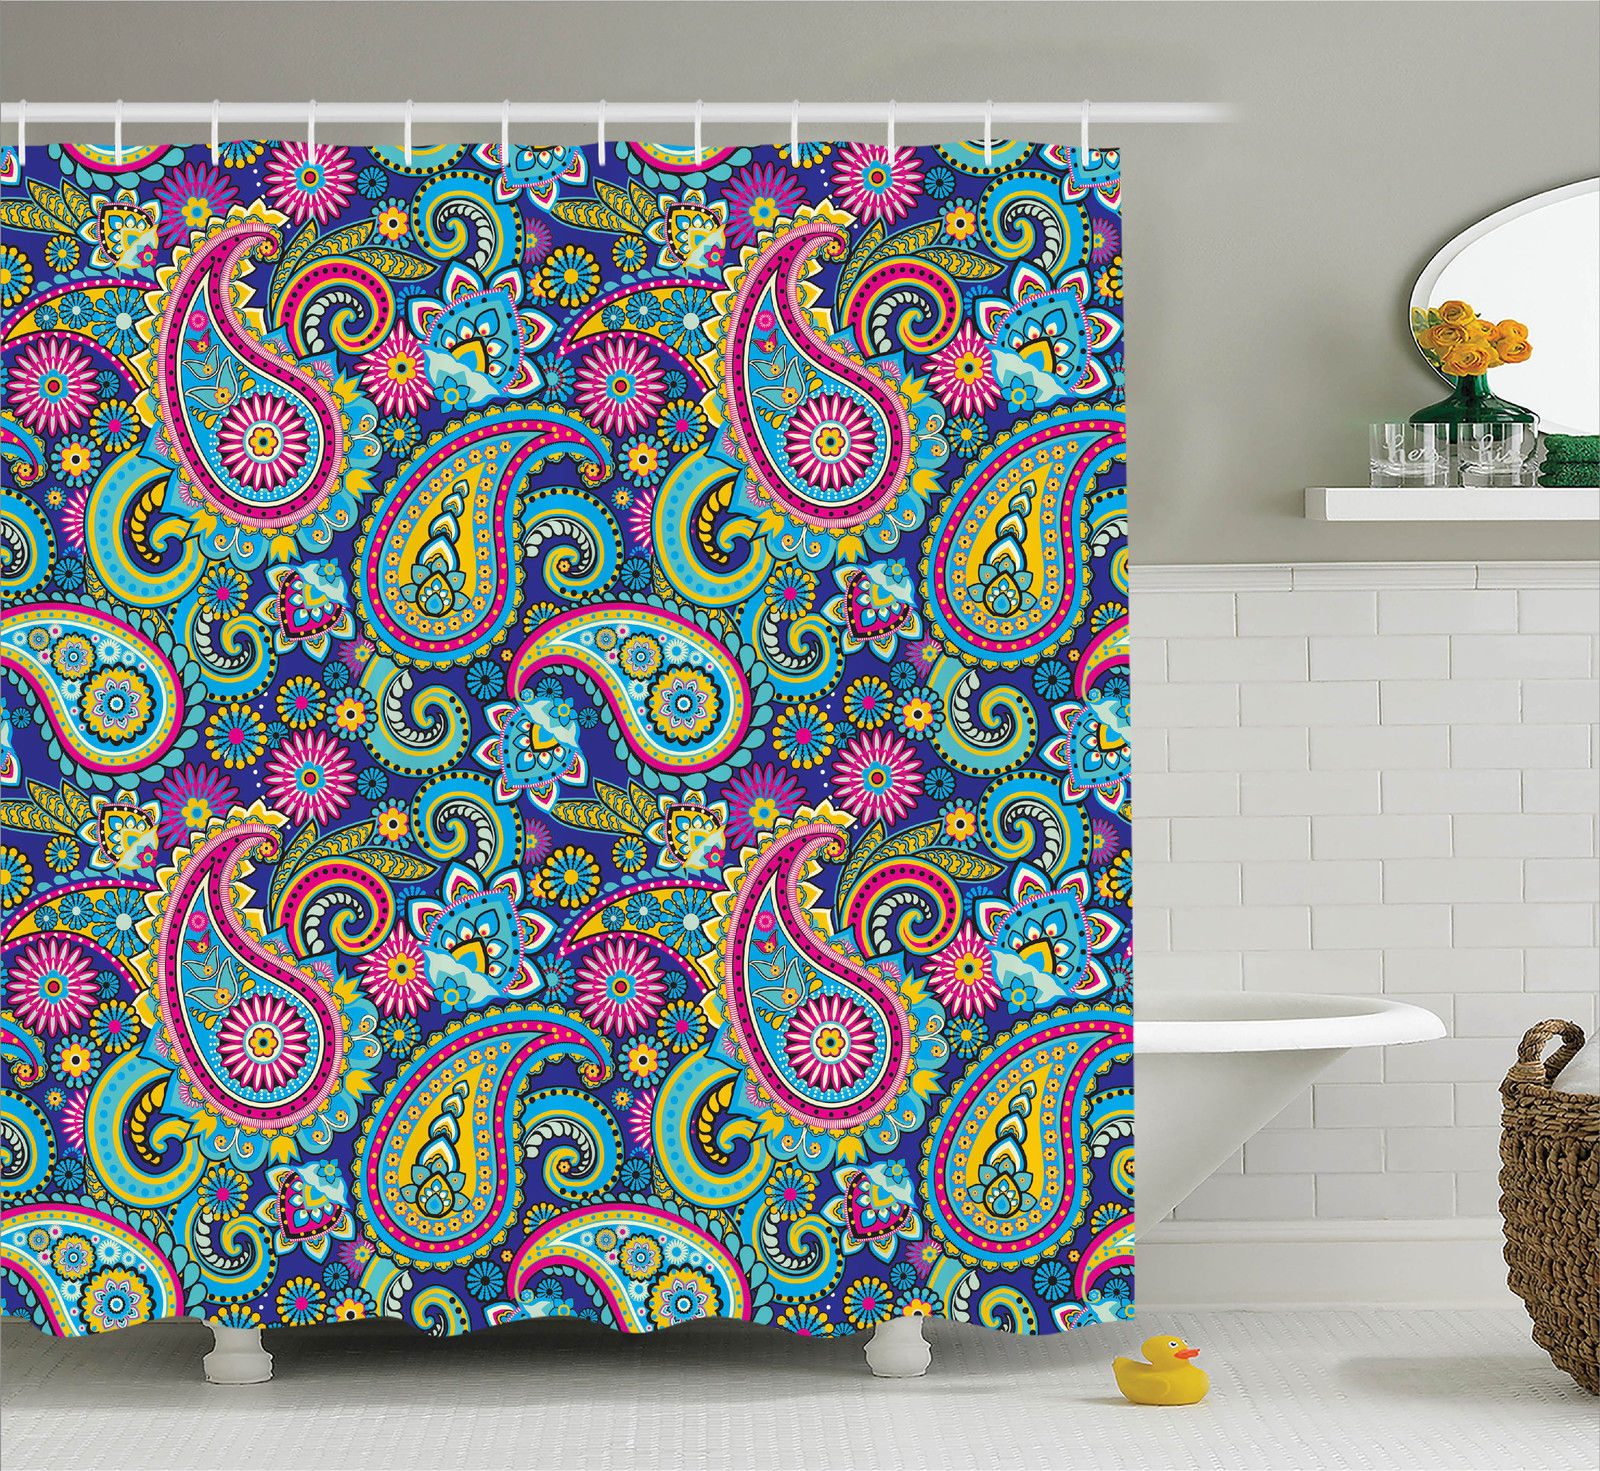 Superb Paisley Decor Shower Curtain Set, Ornate Traditional Paisley Elements With  Original Ethnic Details Bohemian Style